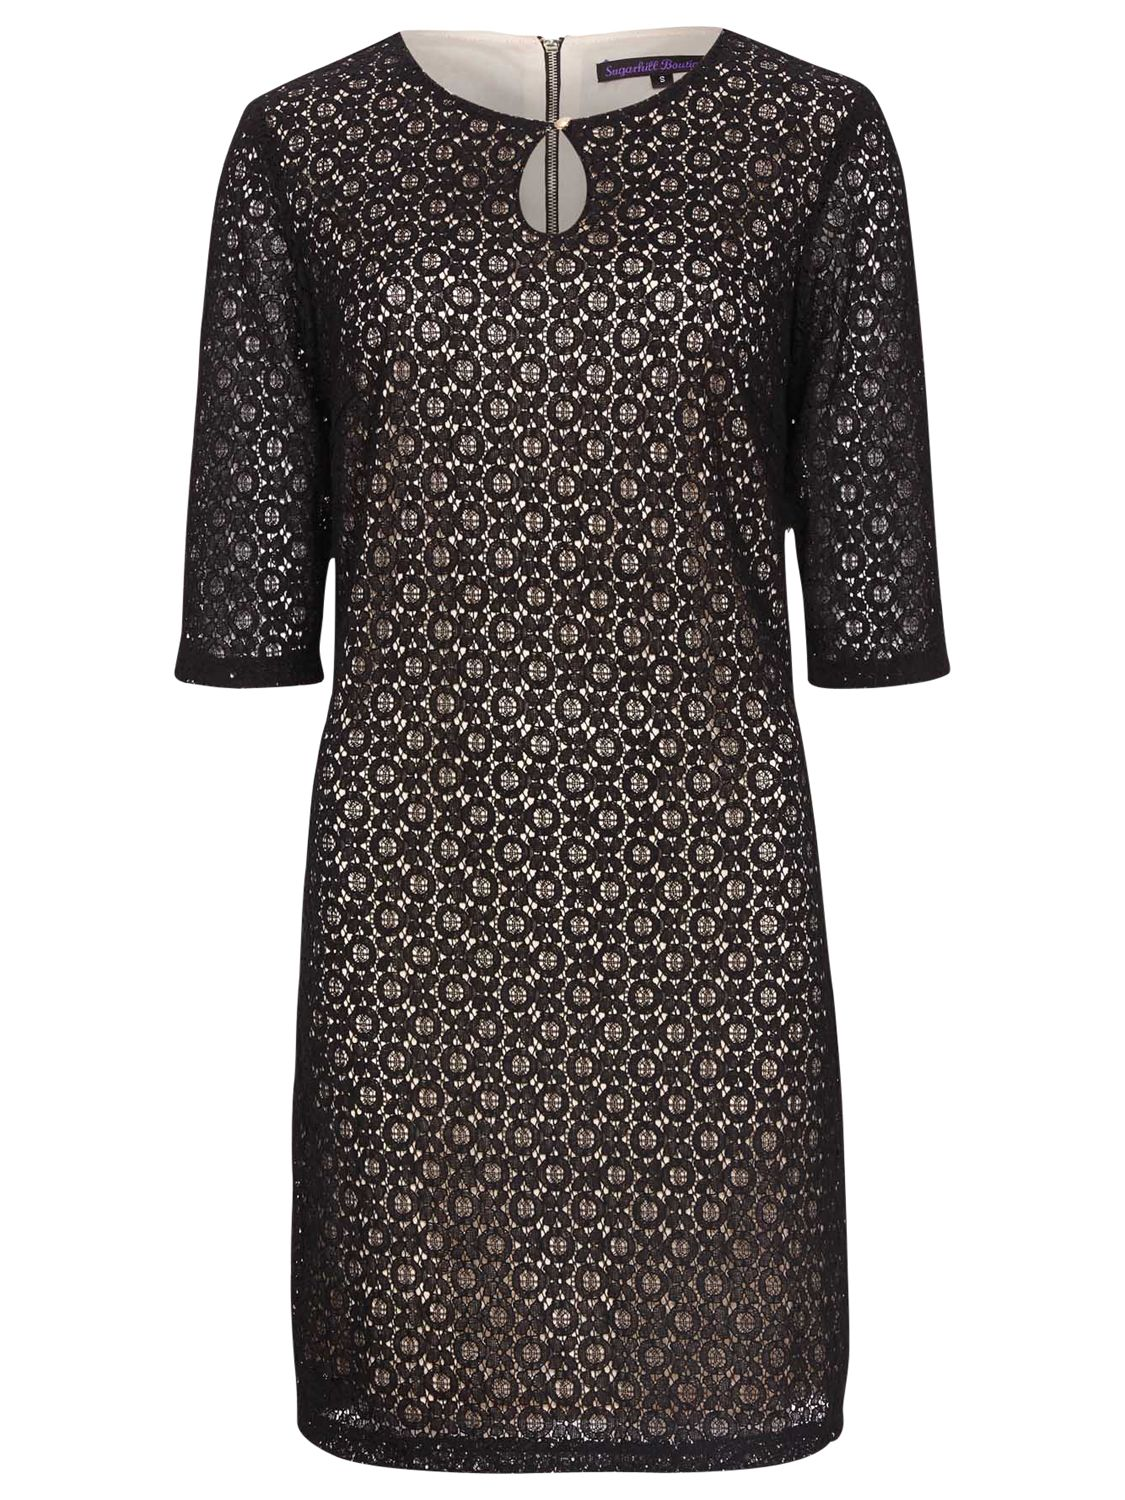 sugarhill boutique amelia dress black, sugarhill, boutique, amelia, dress, black, sugarhill boutique, s|m|xs, clearance, womenswear offers, womens dresses offers, women, womens dresses, party outfits, party dresses, special offers, workwear offers, 1695285